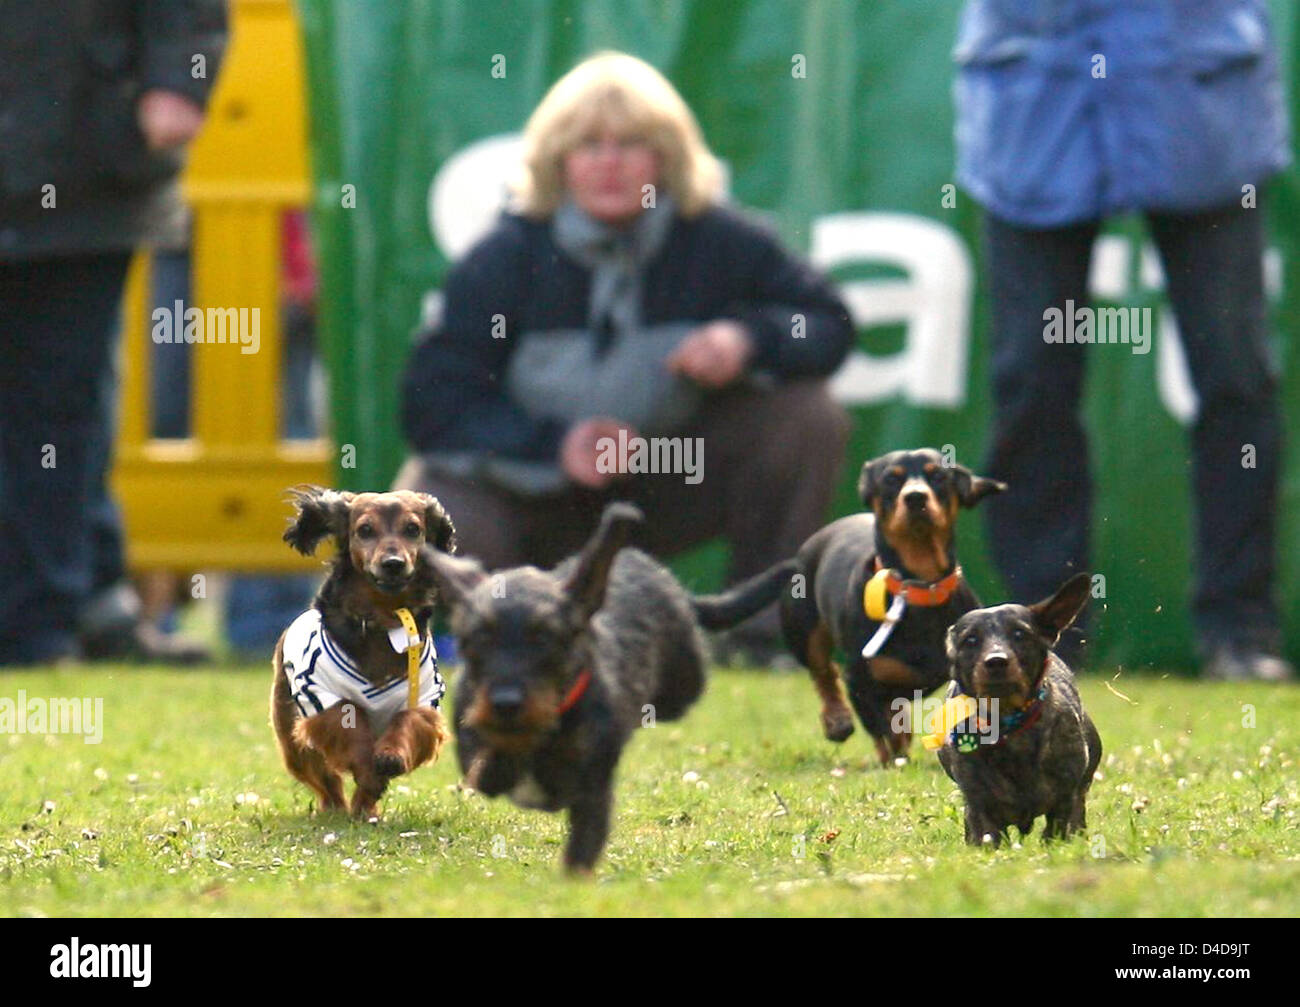 Dachshunds compete at the dachshund race in Itzehoe, Germany, 06 April 2008. A total of 86 quadrupeds entered the - Stock Image